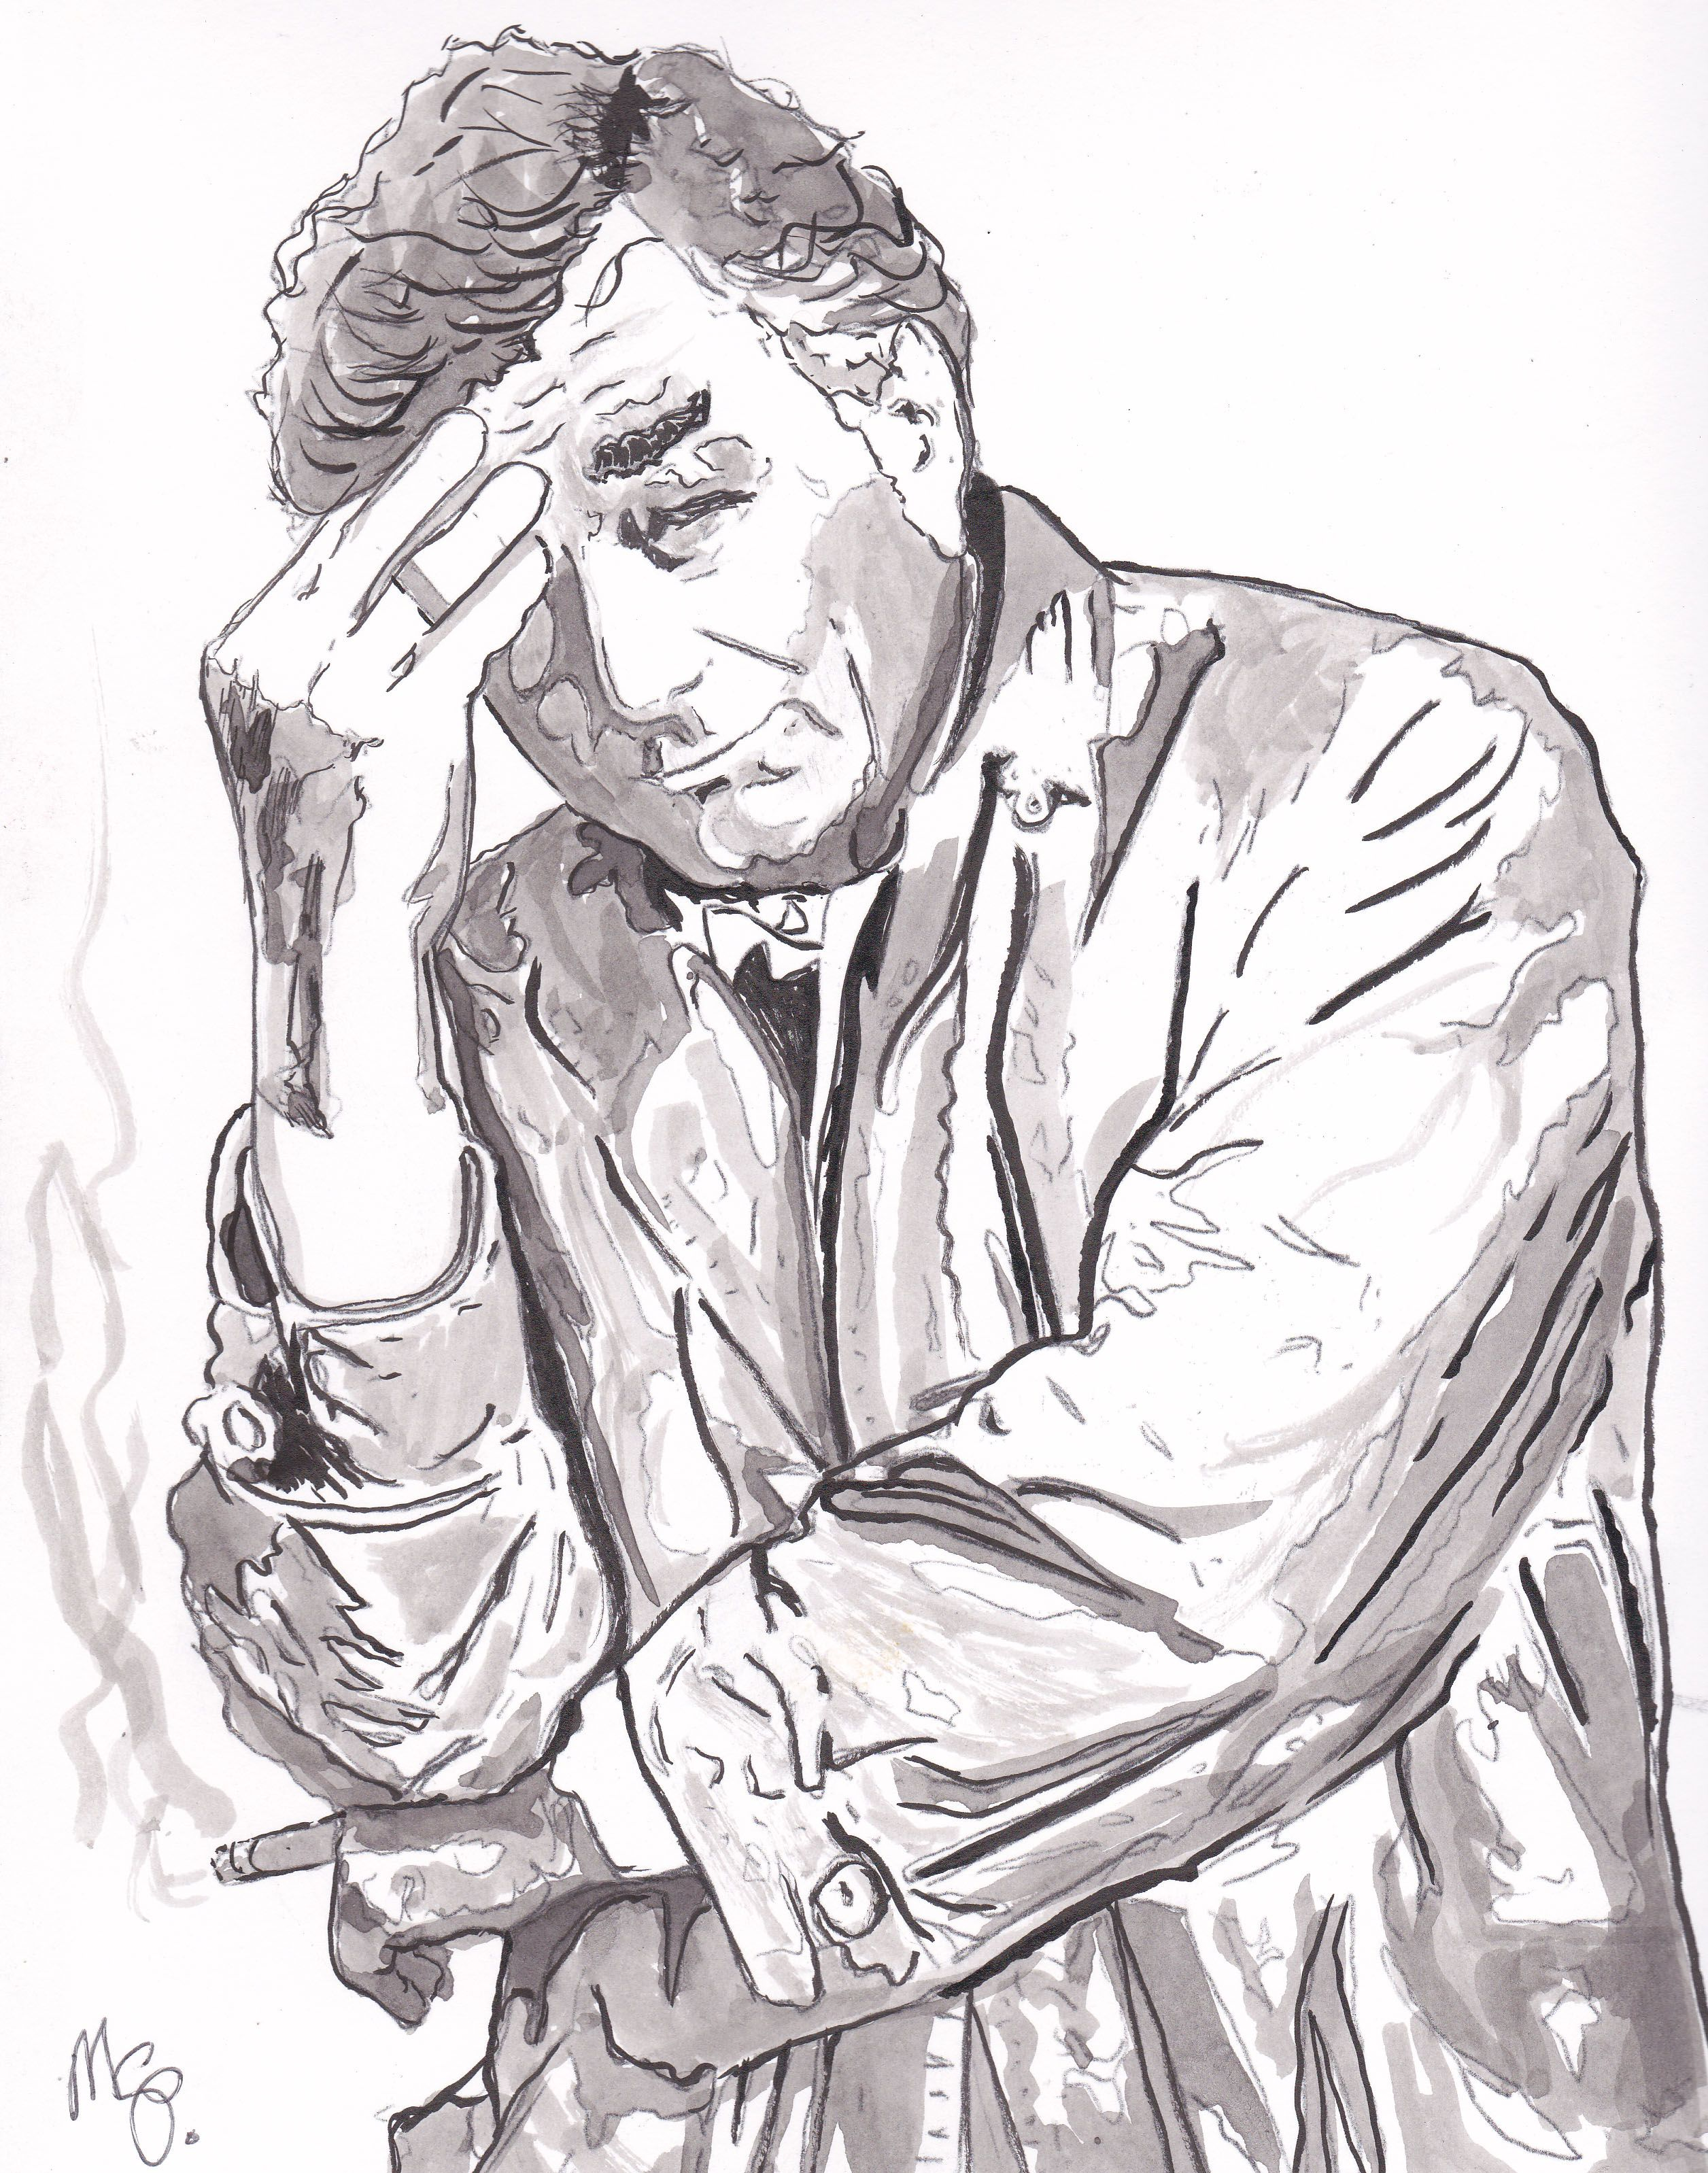 Columbo, Peter Falk, 12 by 9 smooth watercolor paper, ink